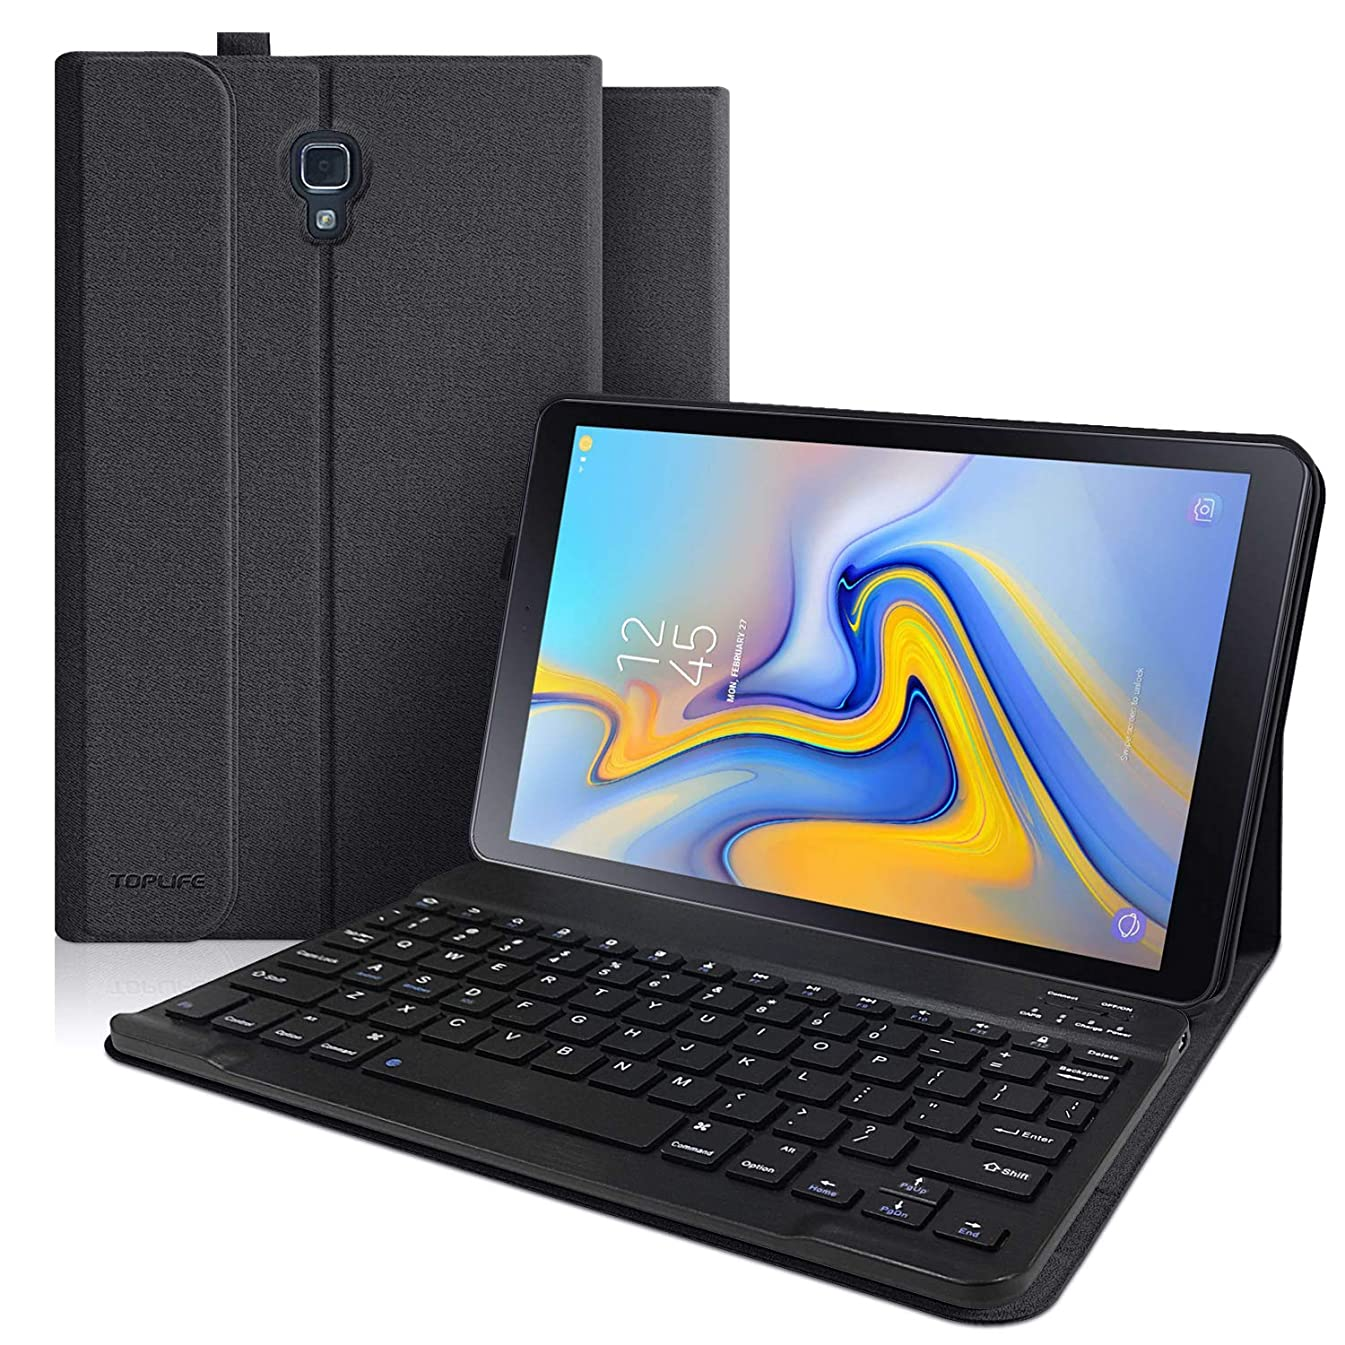 Keyboard Case for Samsung Galaxy Tab A 10.5 2018 Model SM-T590/T595/T597, Slim Multiple Angle Stand Cover with Detachable Wireless Bluetooth Keyboard for Galaxy 2018 Tab A 10.5 (Black)